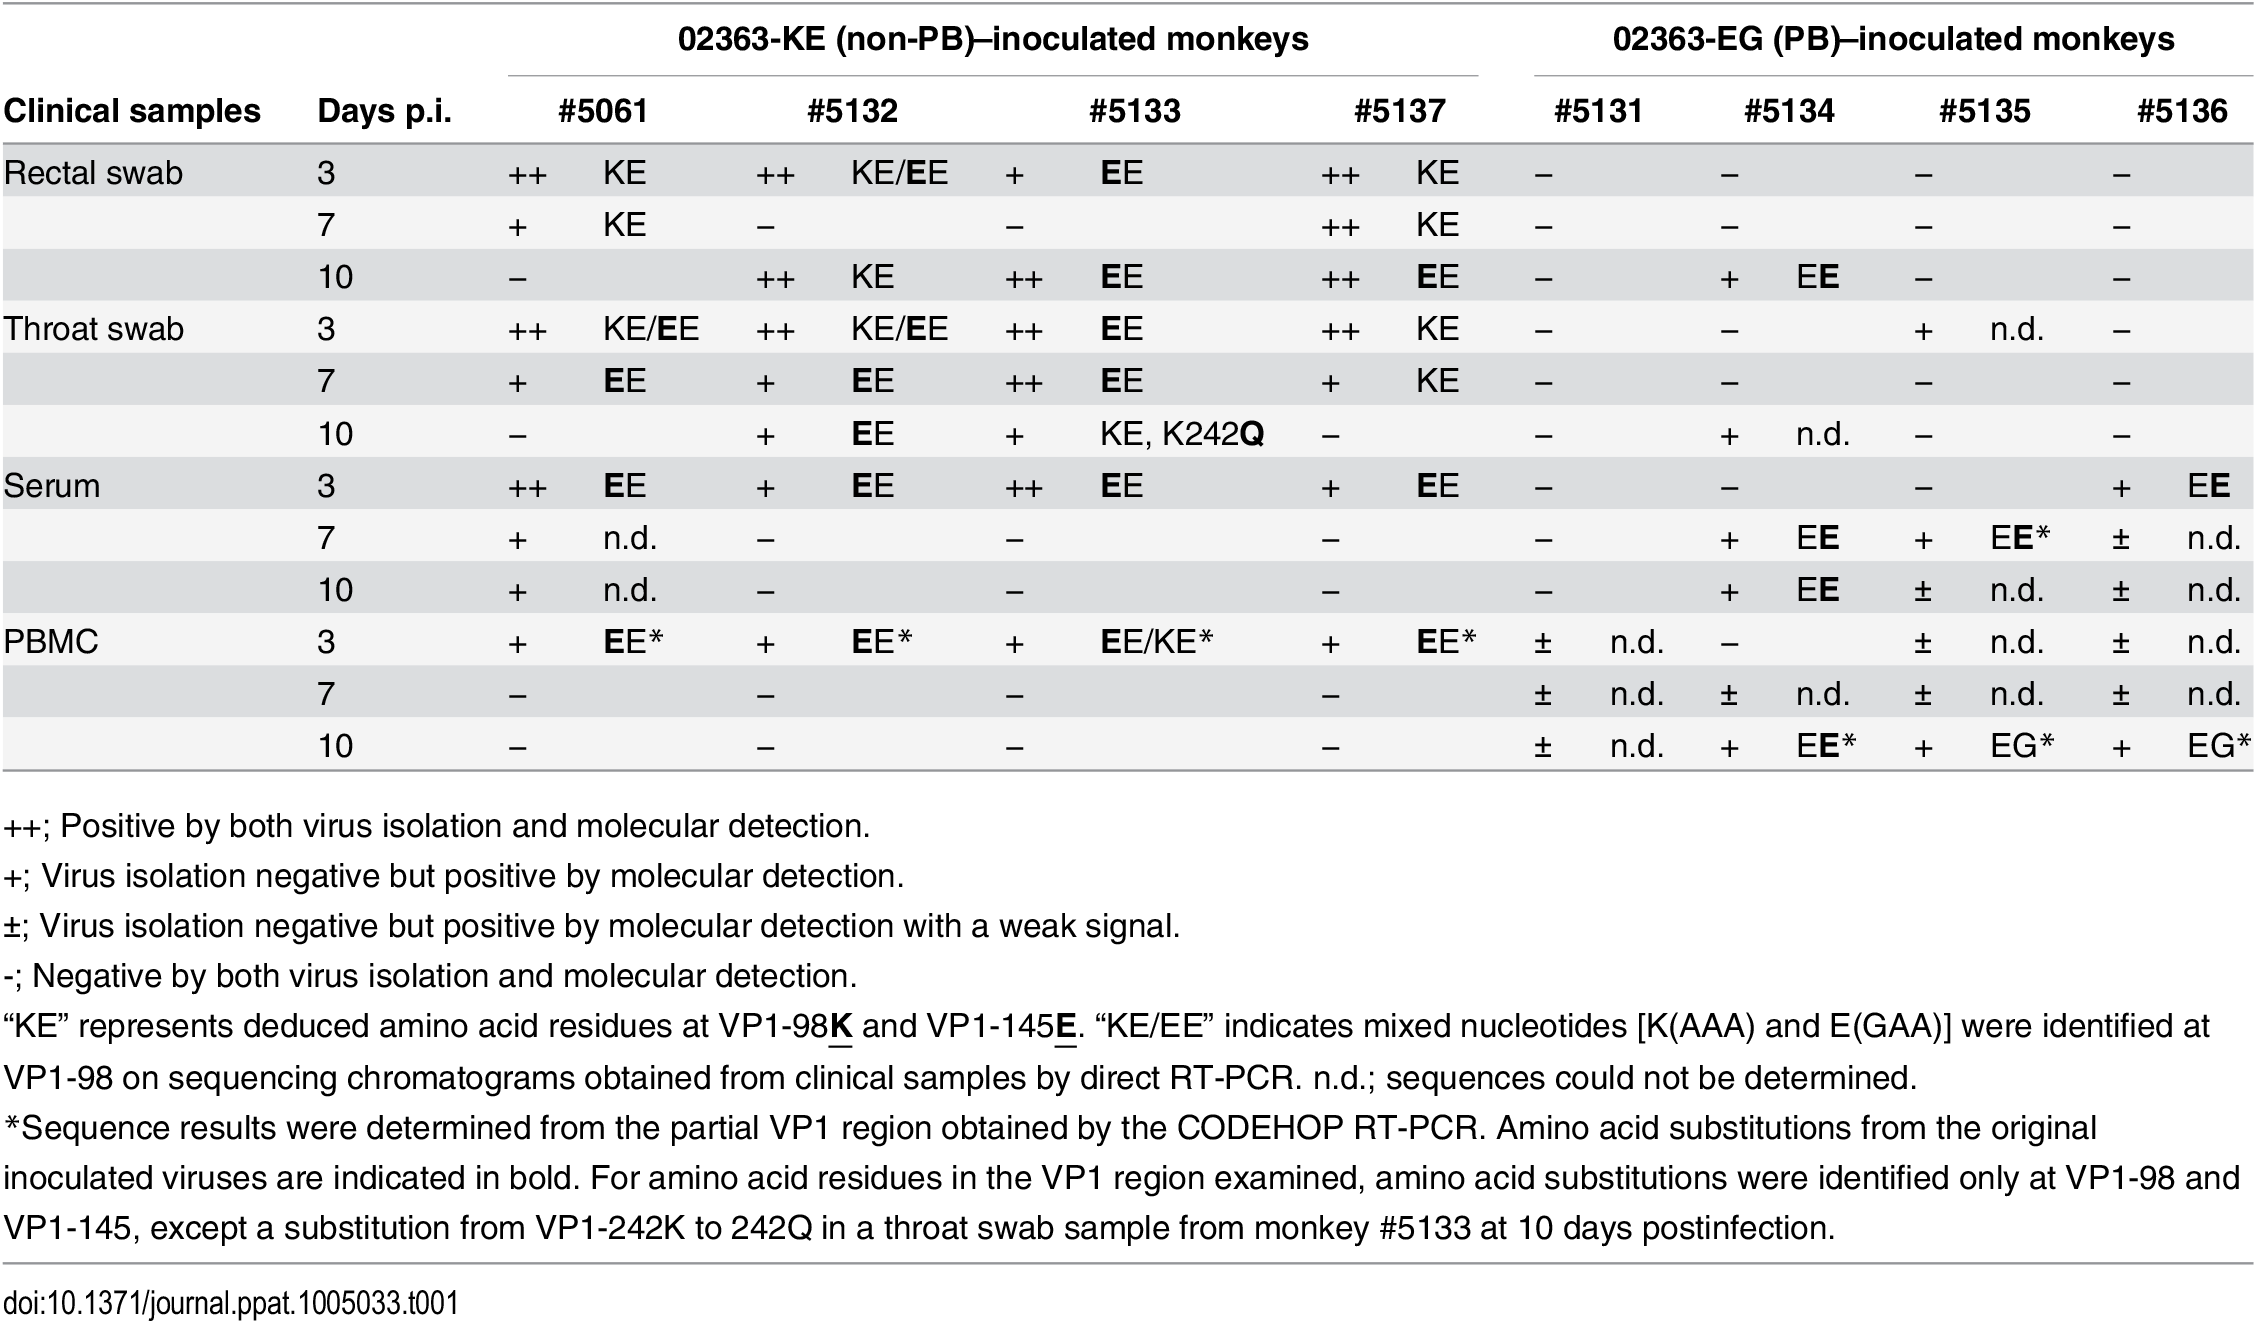 Amino acid residues at VP1-98 and VP1-145 of EV71 variants in clinical samples.